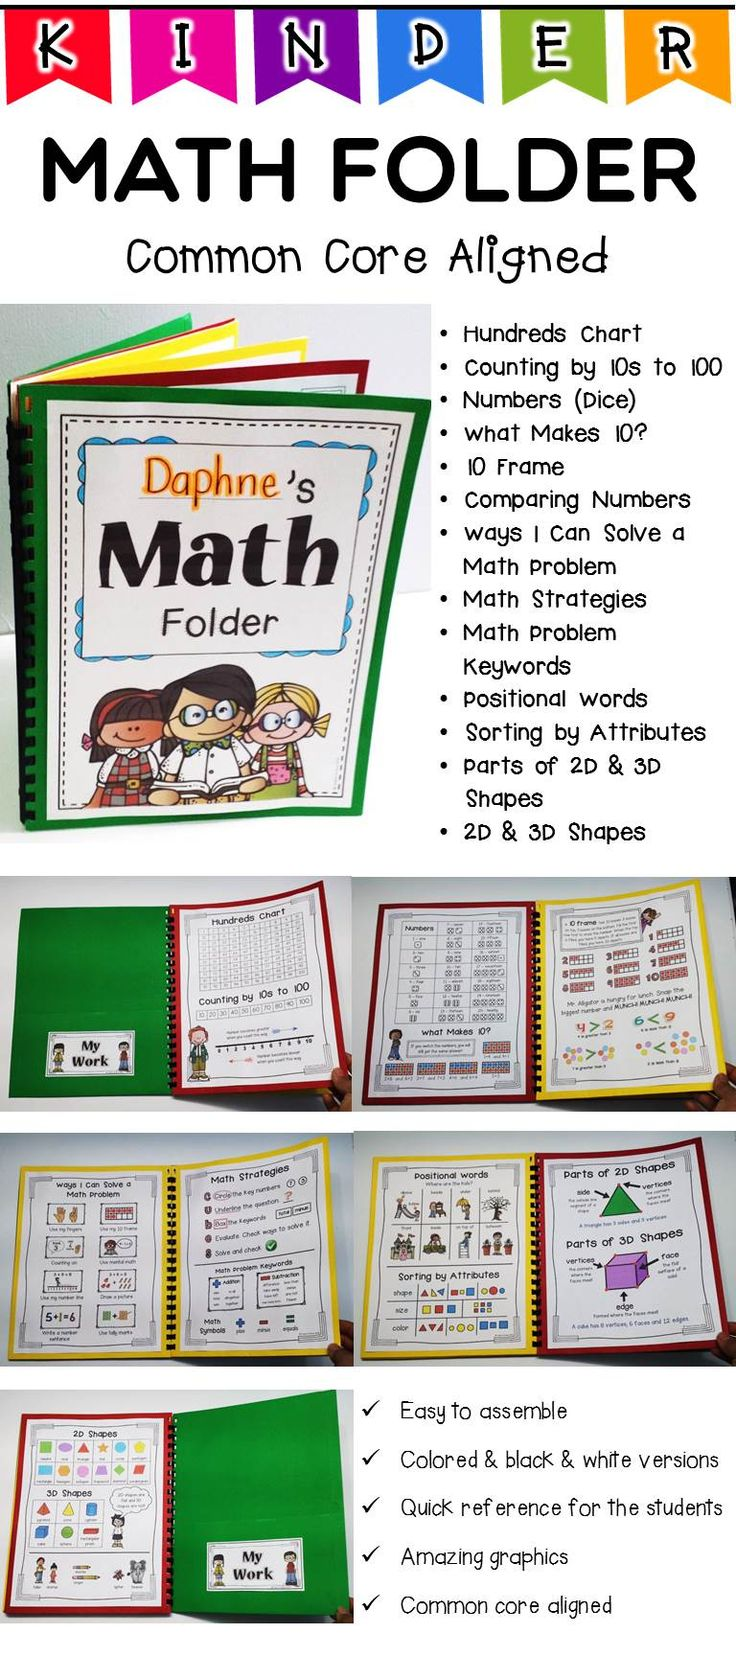 Math Folder: 26 pages - this Math folder will serve as your mathematician's handy tool. This could also be as the homework folder wherein the students and parents could refer to even at home. It is Common Core aligned with helpful illustrations, posters, chart and many more! Black and white version is also included. You only need to bind 3 folders together and stick the pages. SO EASY!